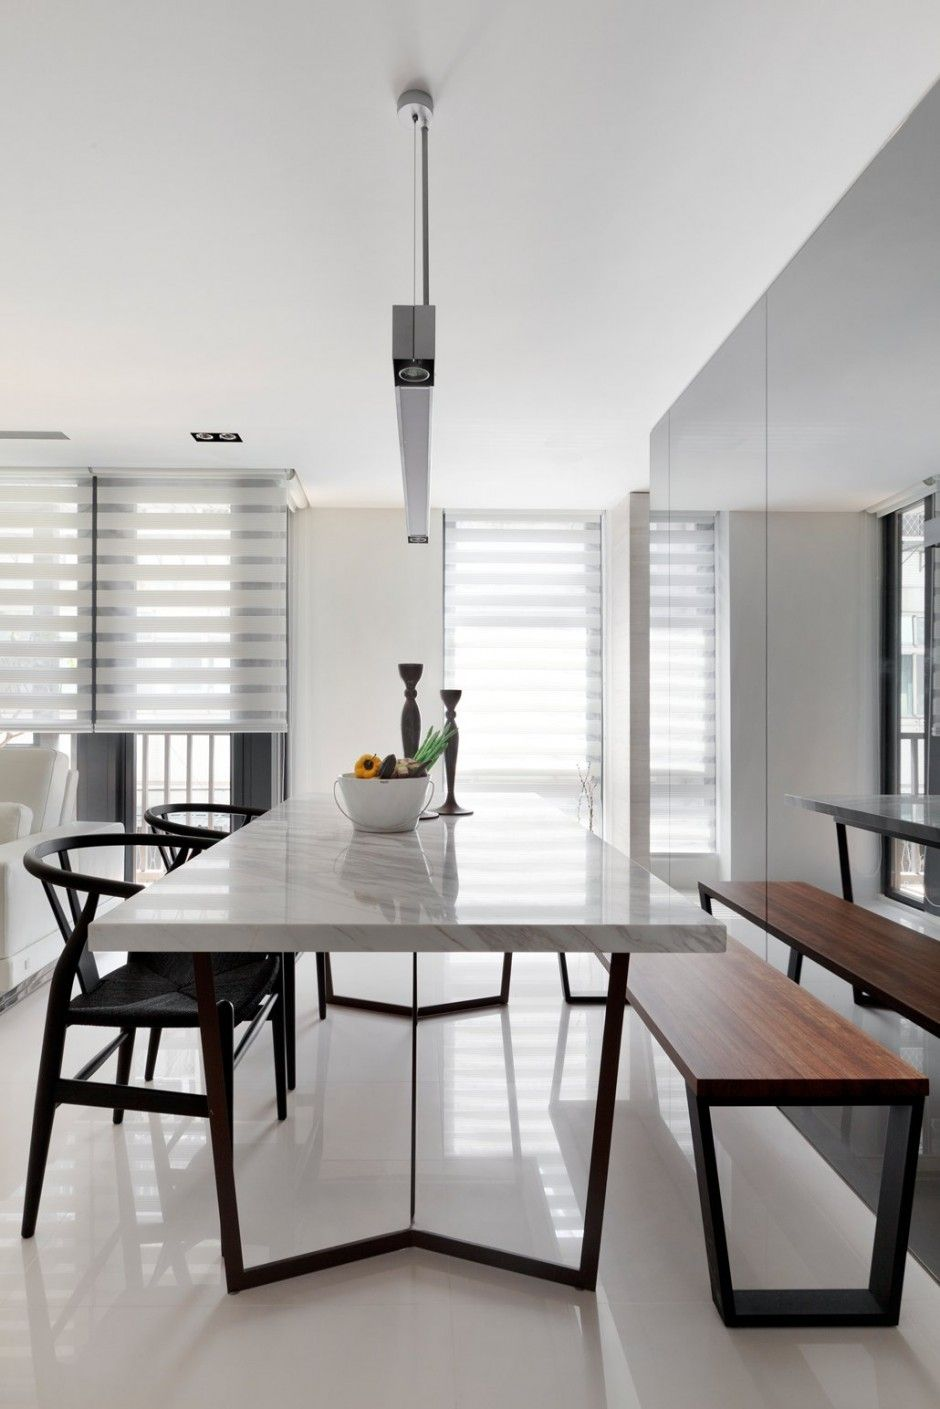 Atelierii Have Designed The Interior Of Residence Chang Located